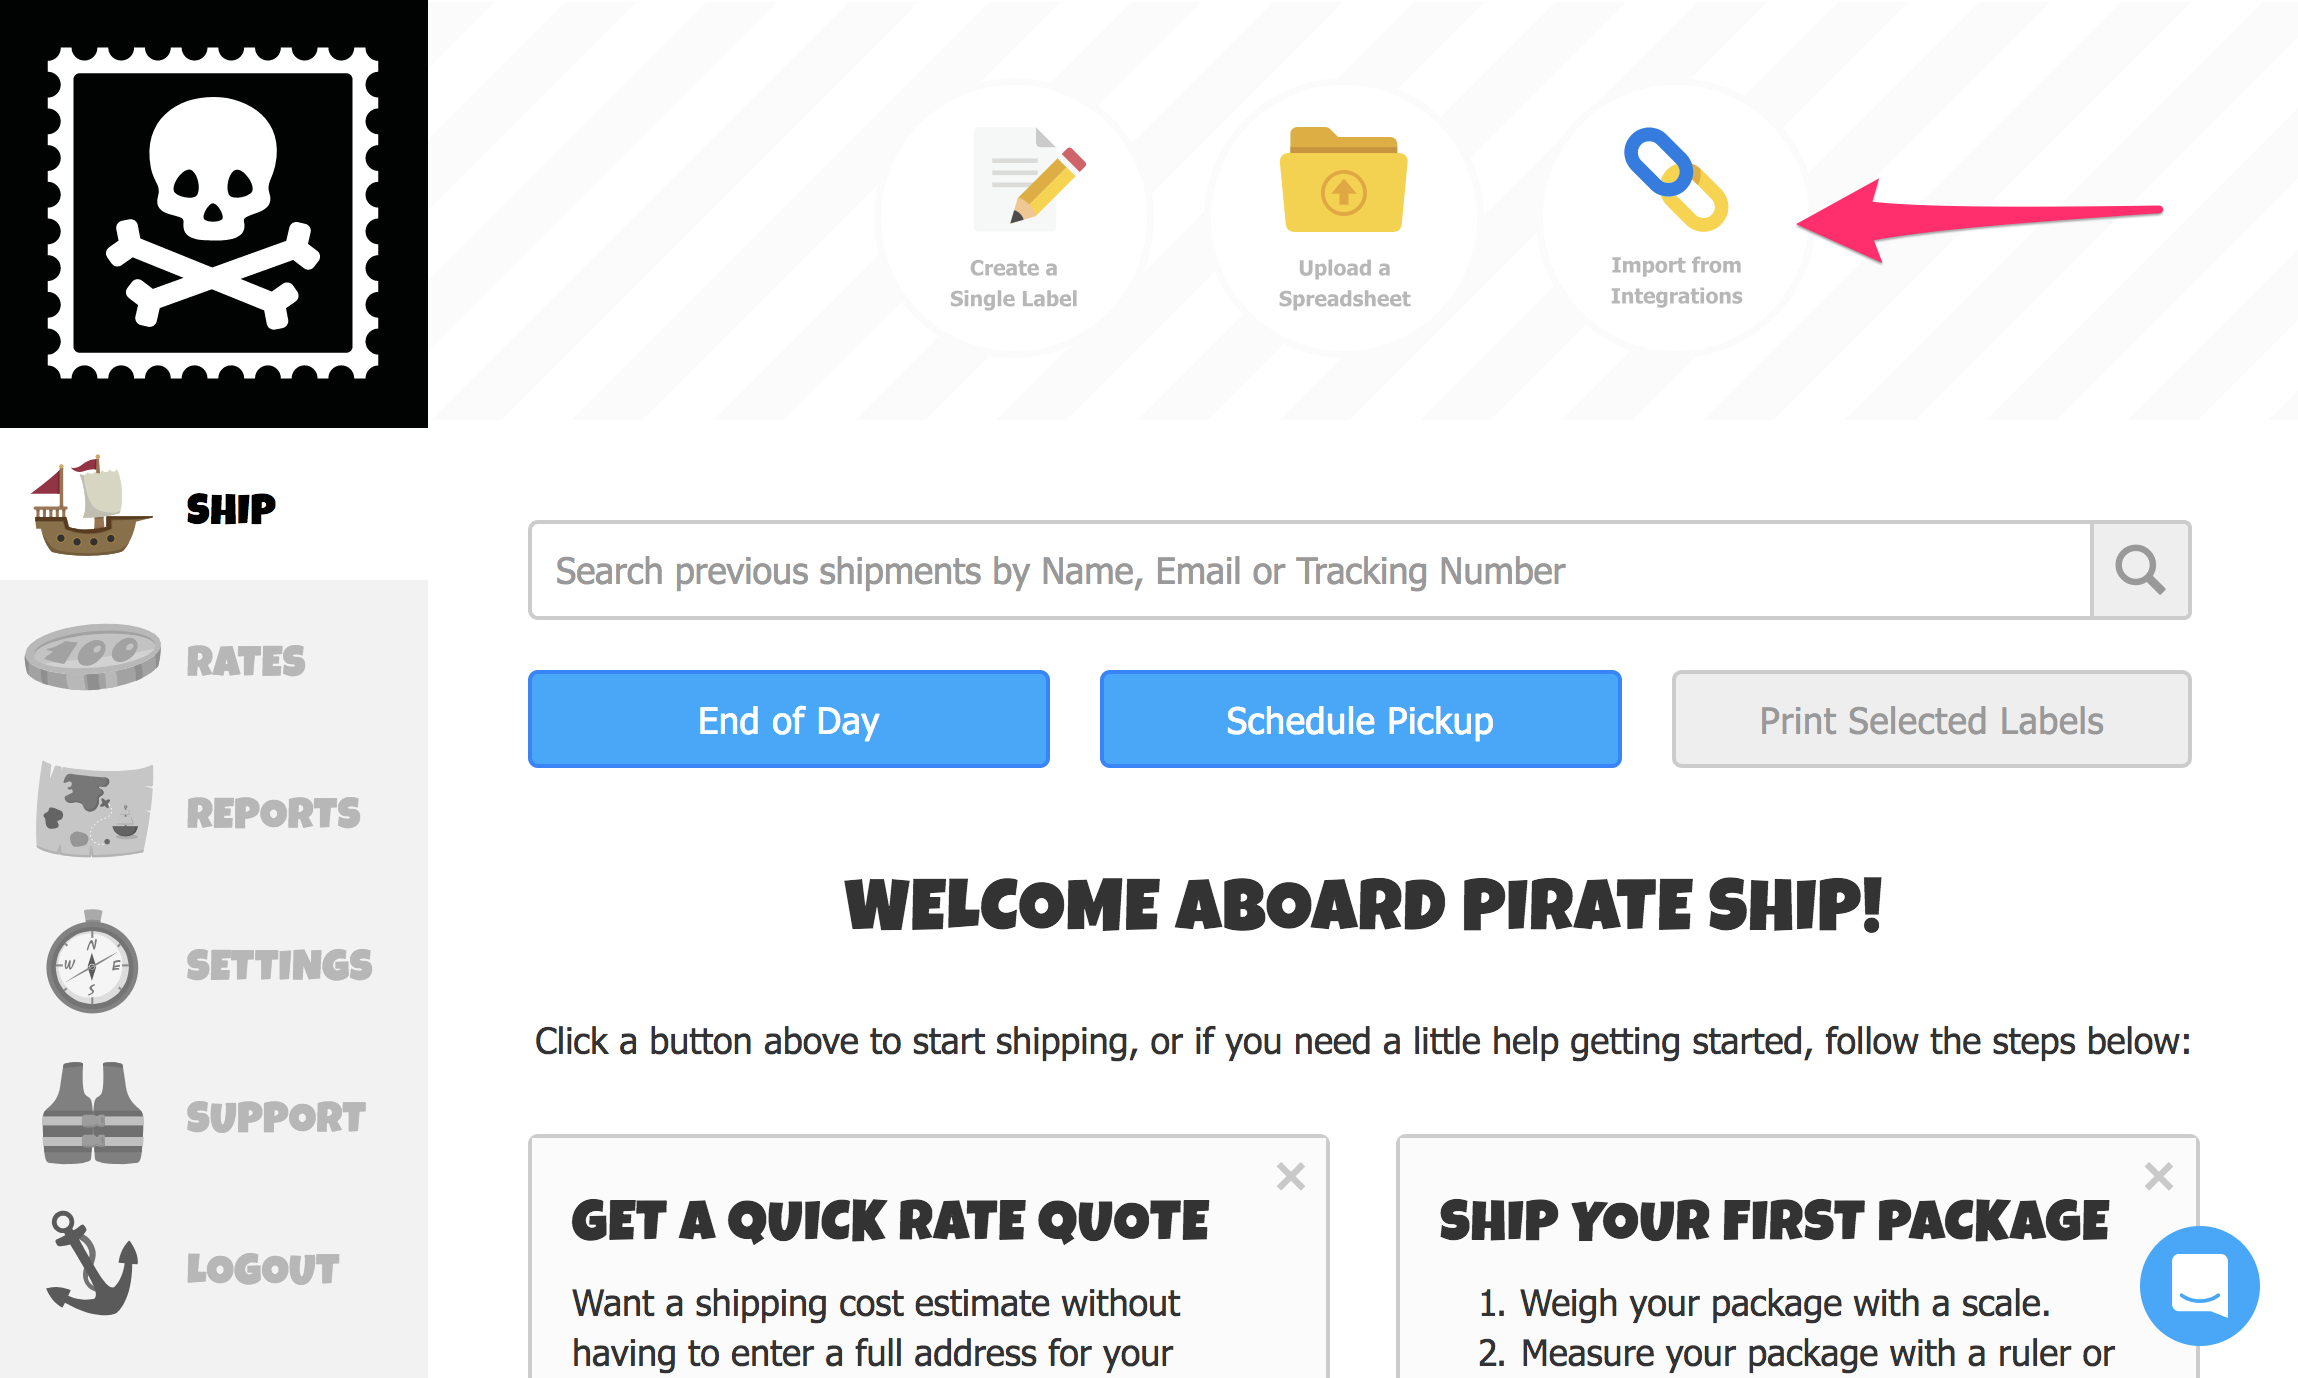 A screenshot showing the Ship Page on Pirate Ship. A red arrow points at the 'Import From Integrations' button in the top center of the page.